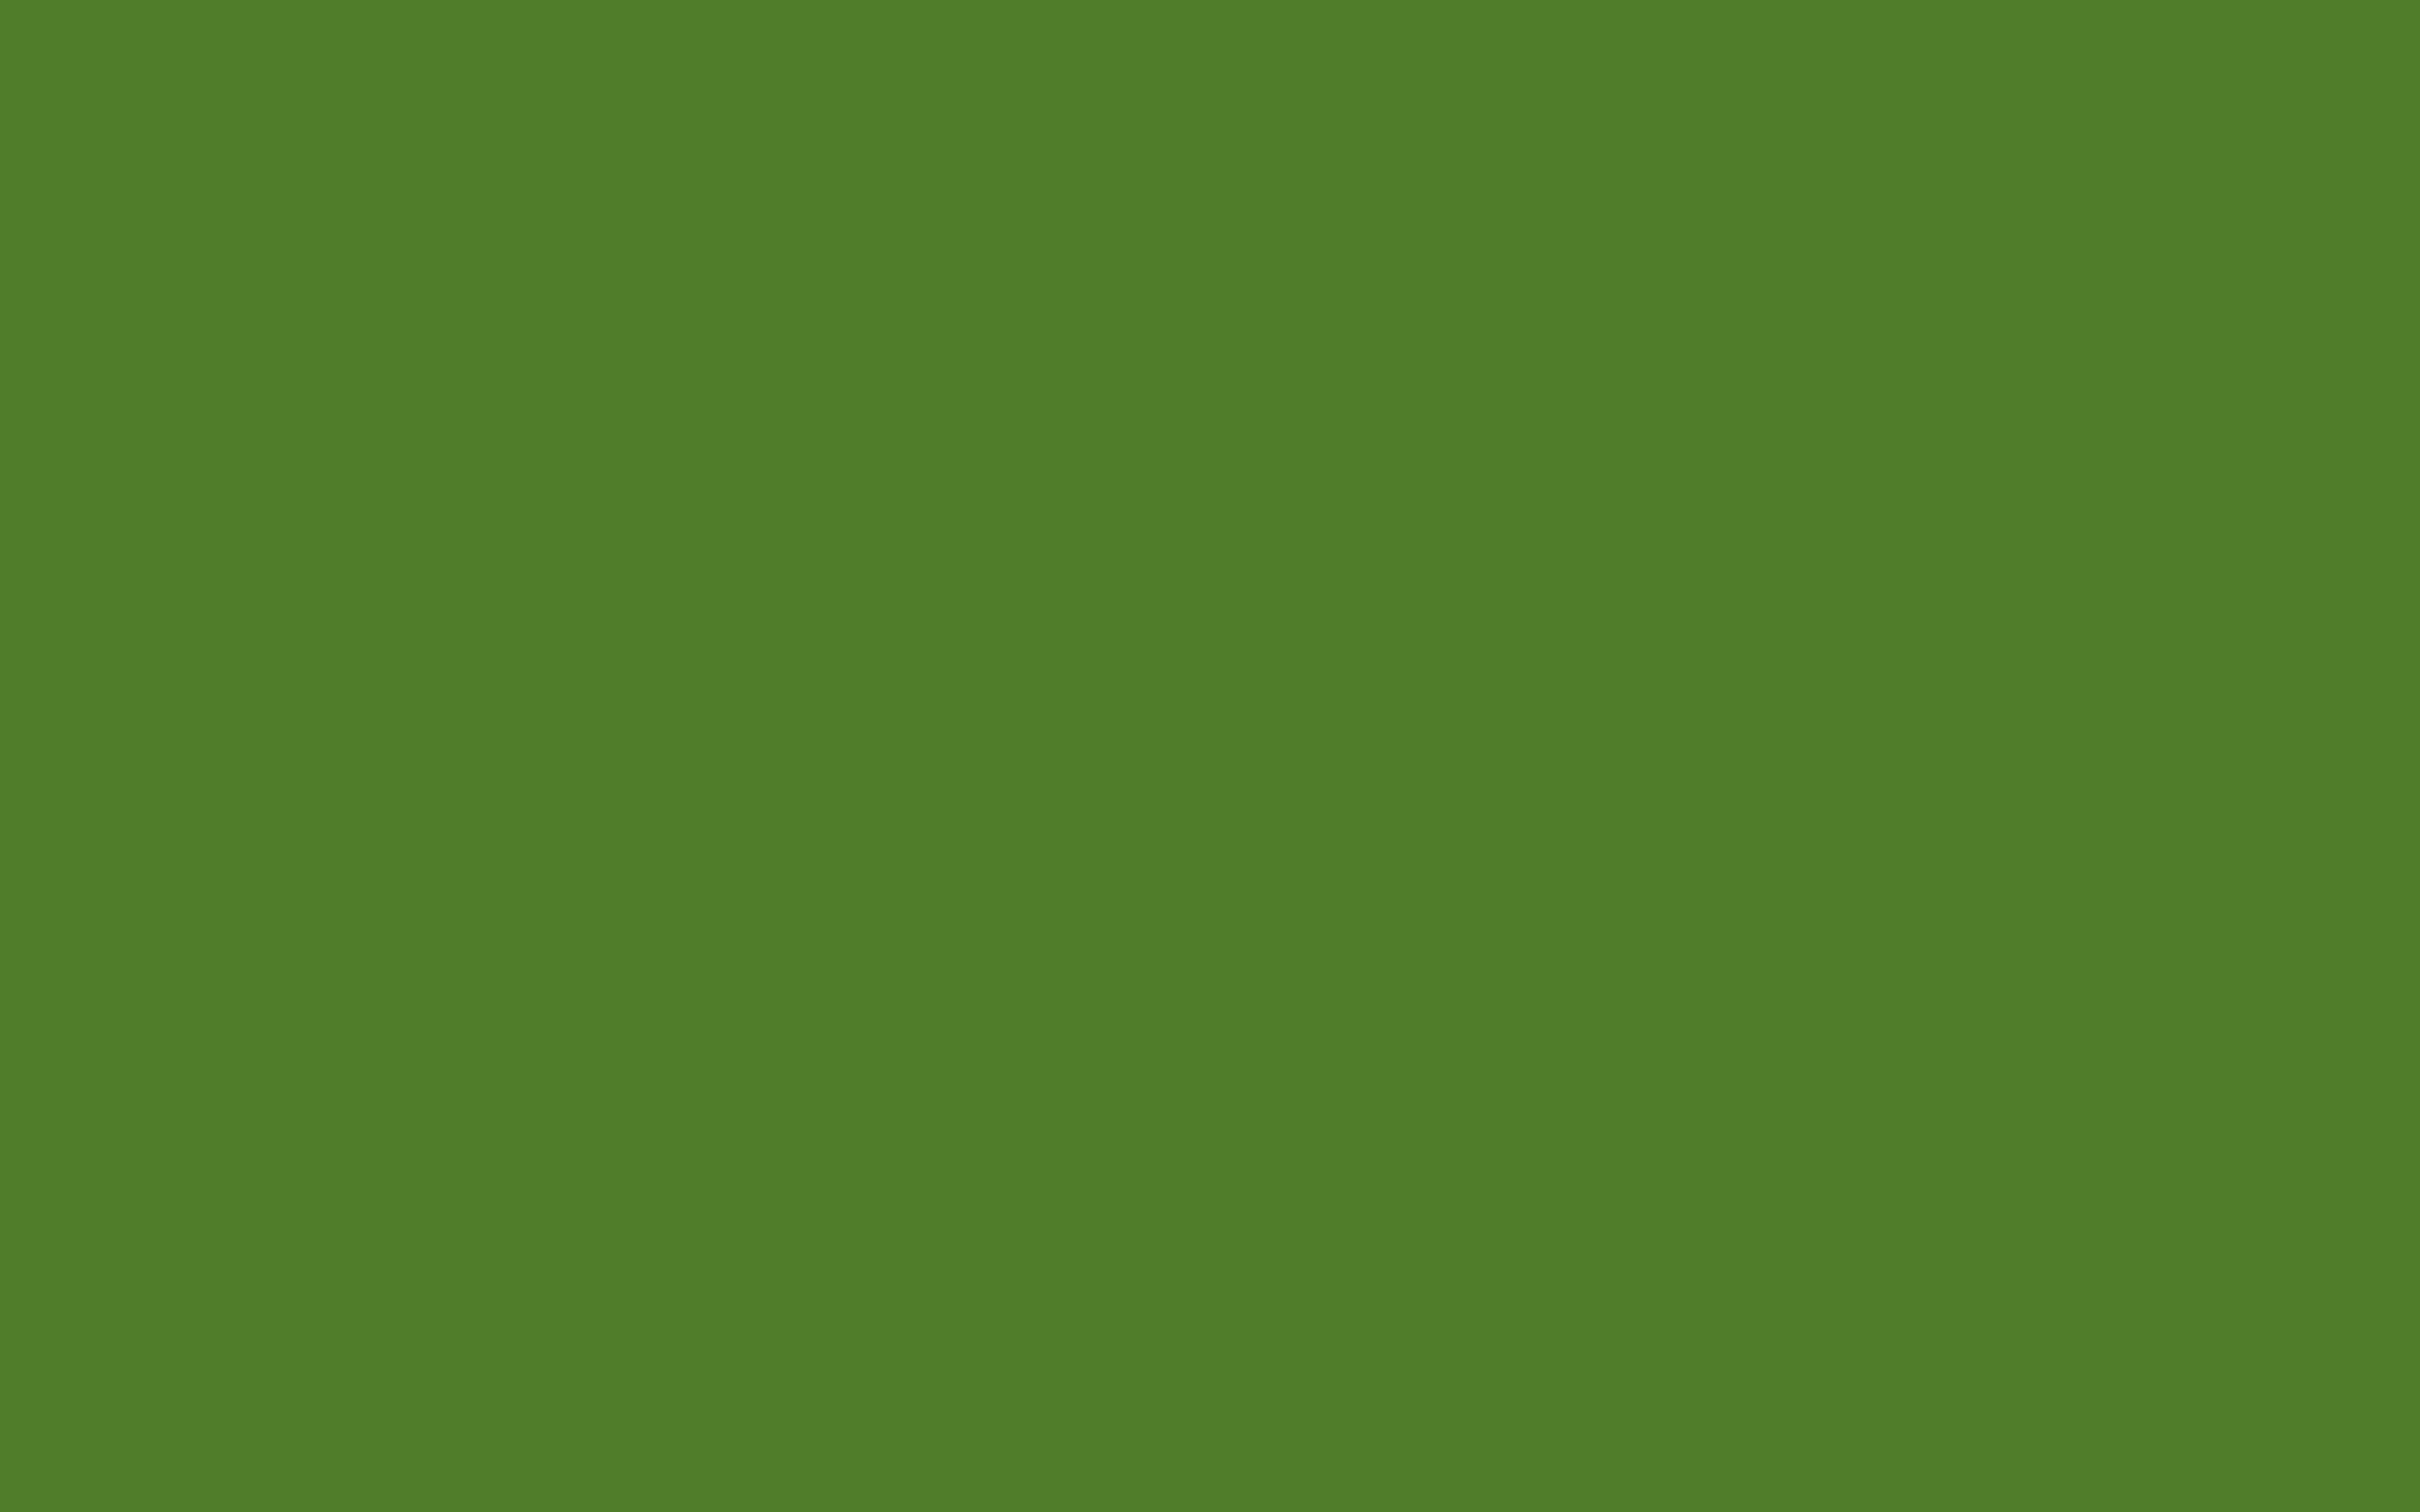 2560x1600 Sap Green Solid Color Background